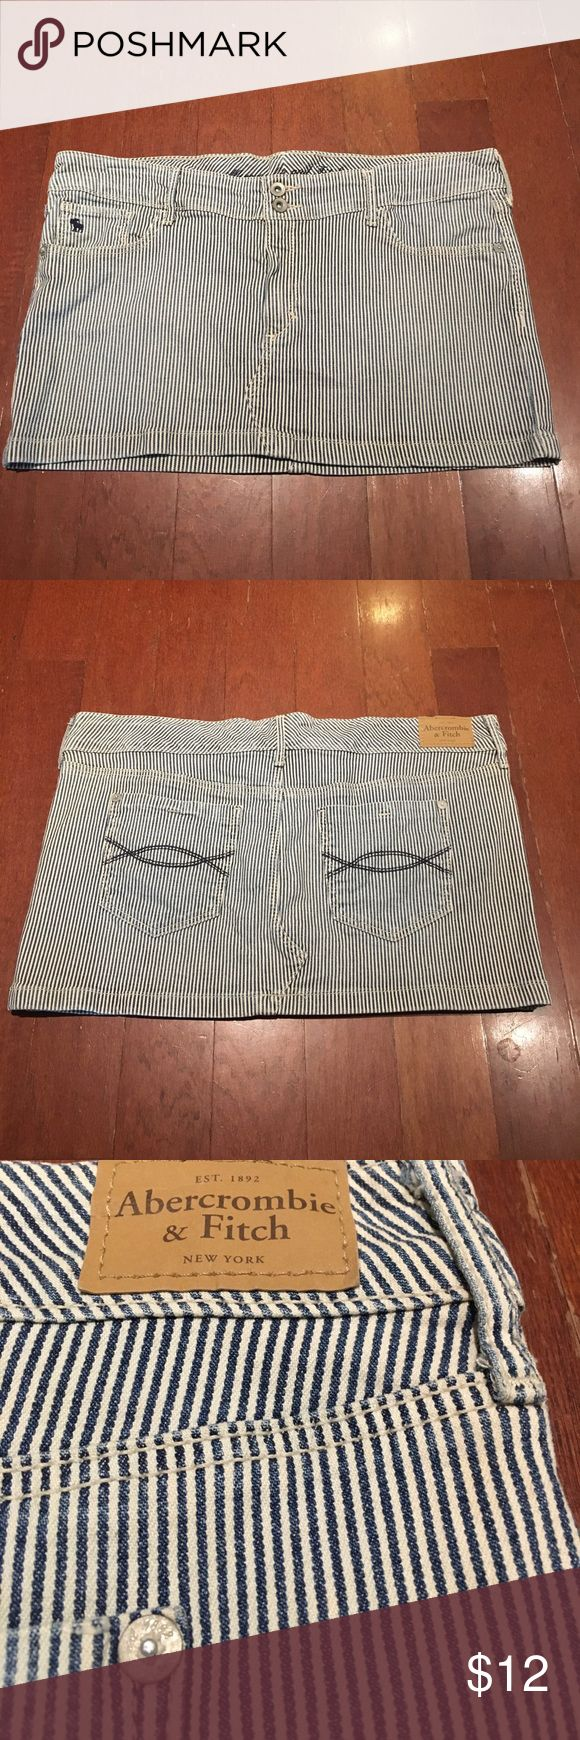 Abercrombie and Fitch mini Jean skirt. Size 8 Abercrombie and Fitch mini Jean skirt. Size 8. Great condition, no rips or stains etc. two front and two rear pockets. Very cute skirt Abercrombie & Fitch Skirts Mini